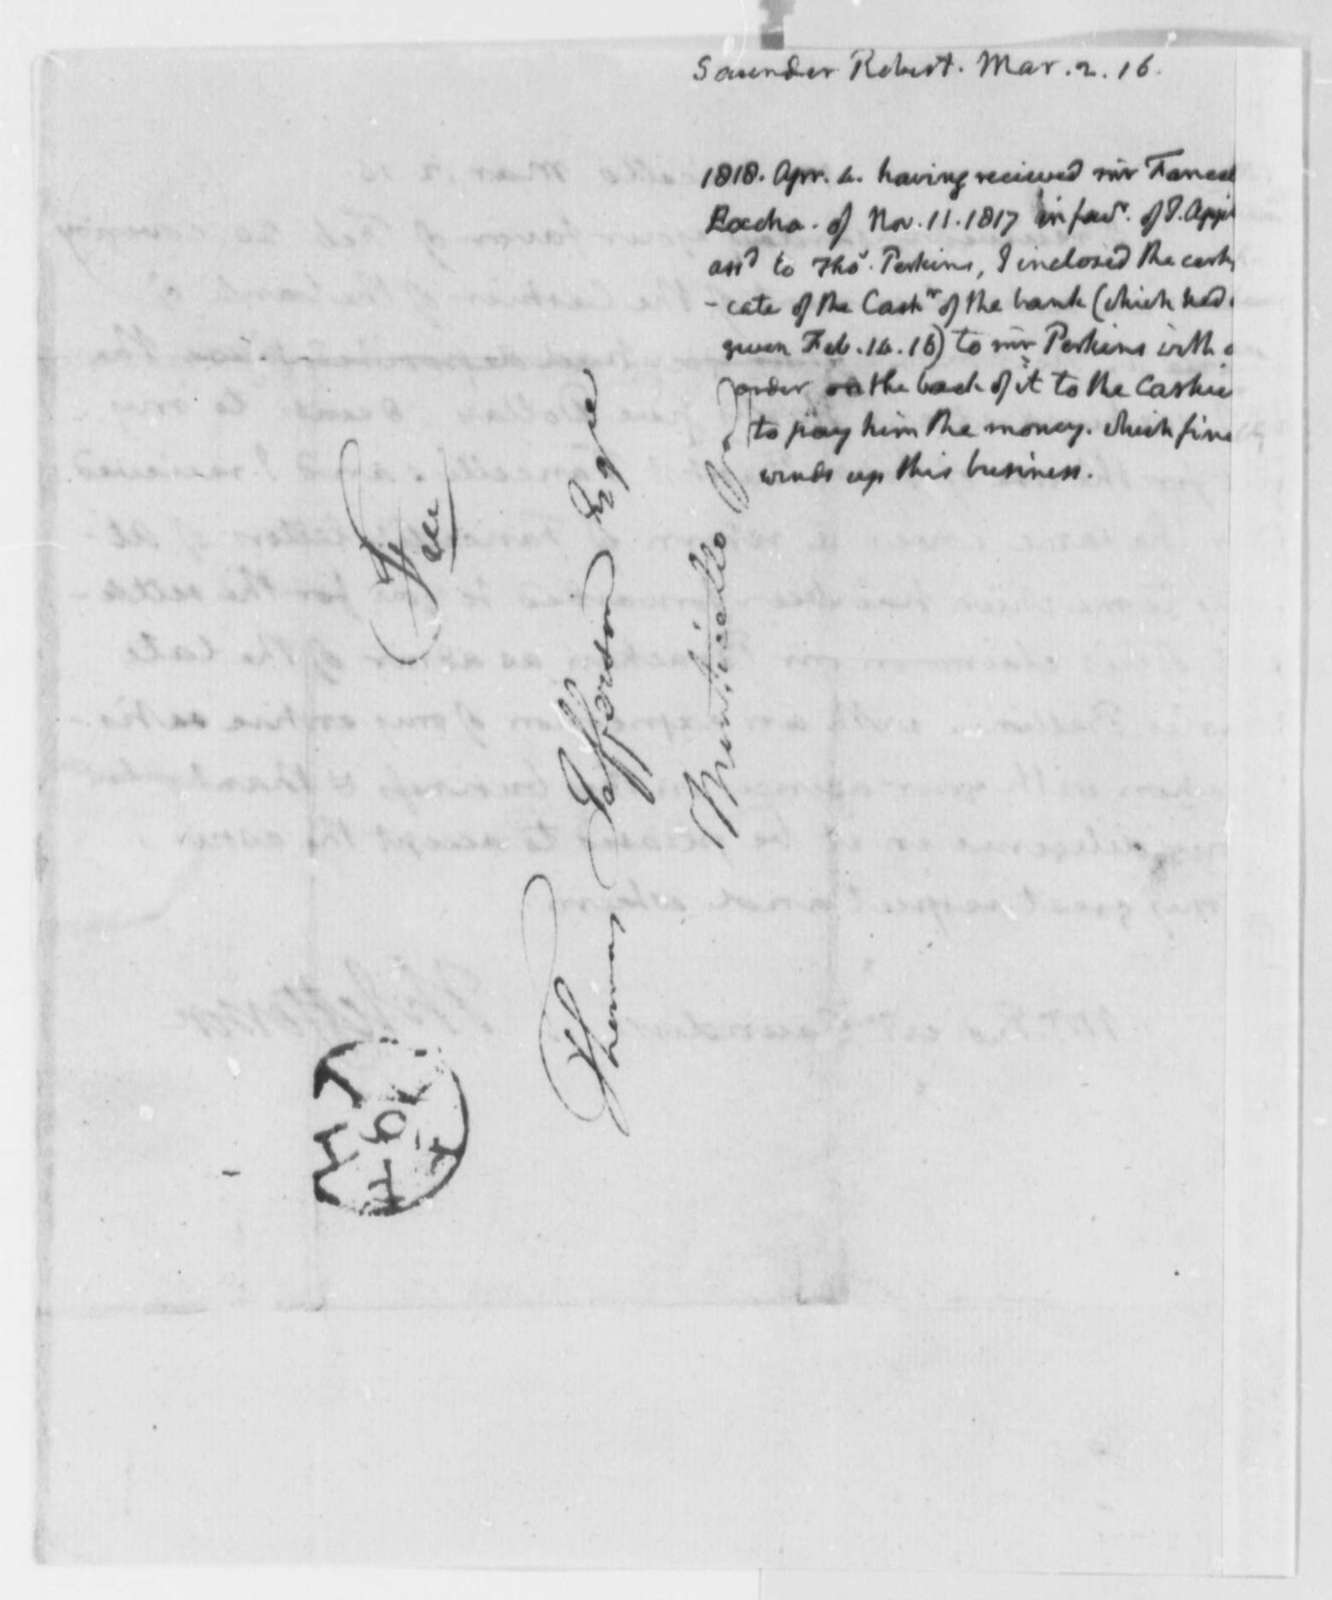 Thomas Jefferson to Robert Saunders, March 2, 1816, with Thomas